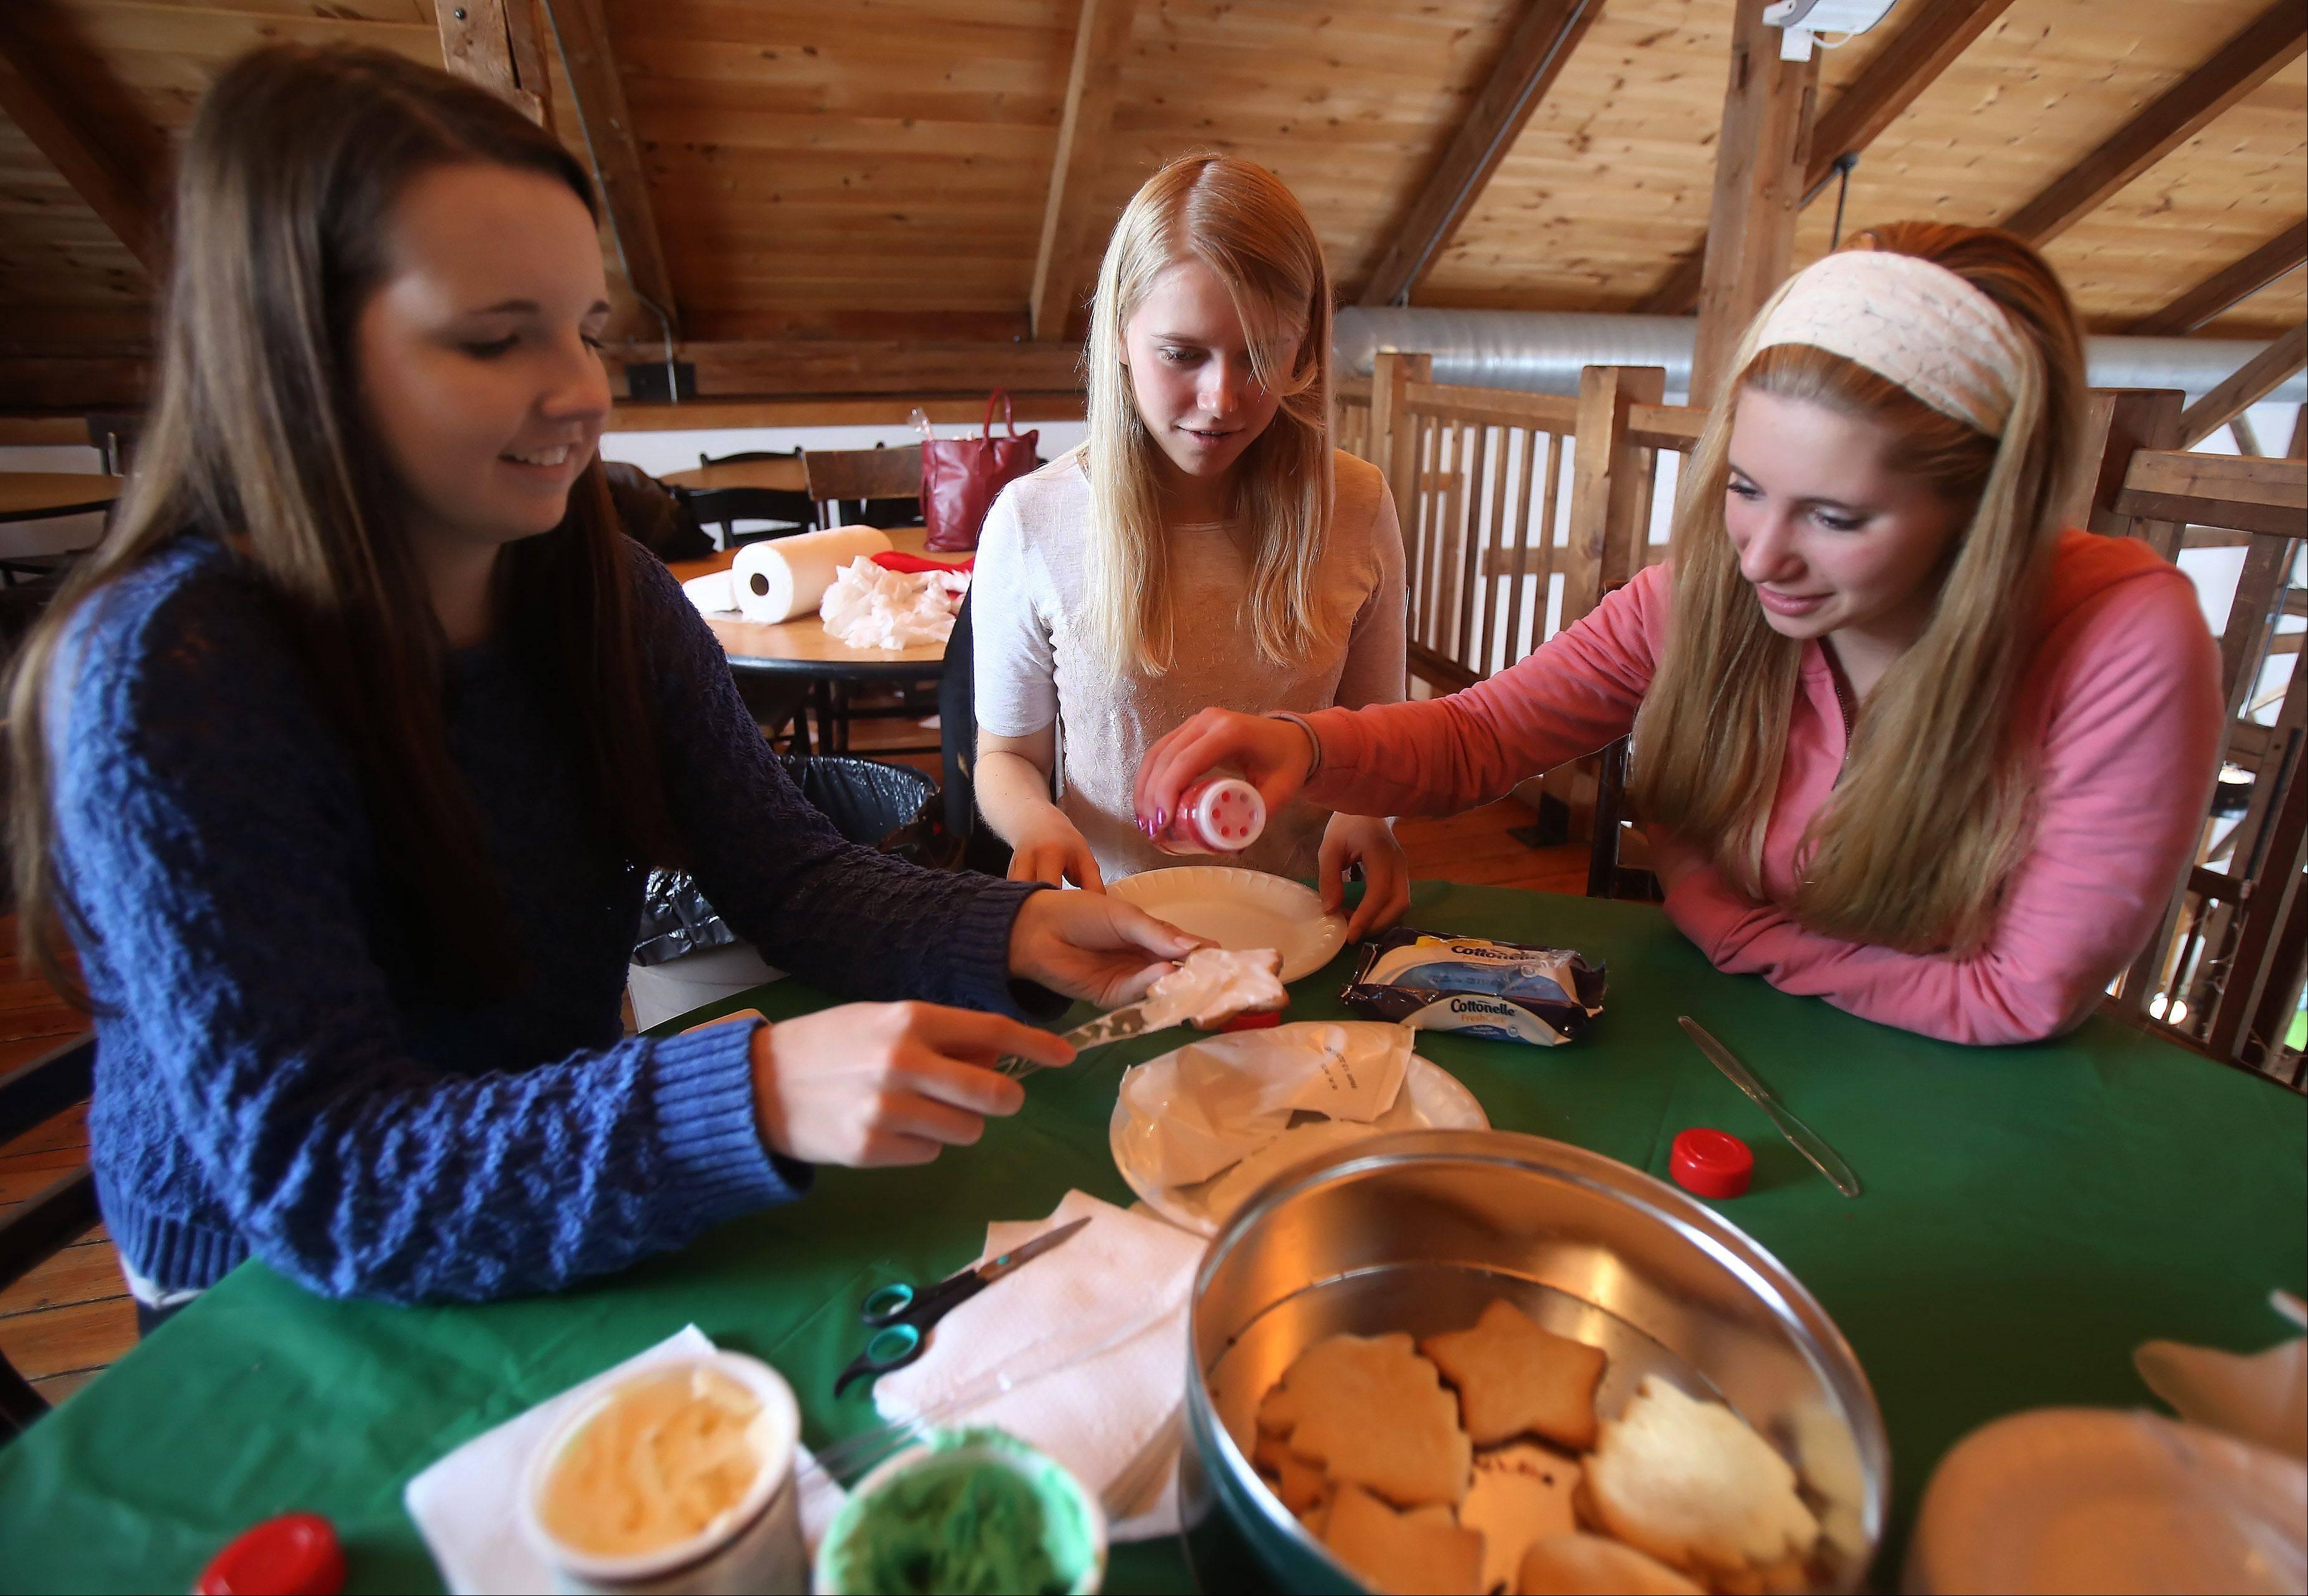 Amanda Jung, left, Hannah Dwinell and Rachel Biersdorf, all of Grayslake, decorate cookies in Santa�s Workshop during the 18th annual Prairie Crossing Cookie Walk and Bake Sale Sunday at Byron Colby Barn in Grayslake. Visitors could choose from thousands of homemade cookies, as well as handmade gifts and unique items from local artisans and merchants.